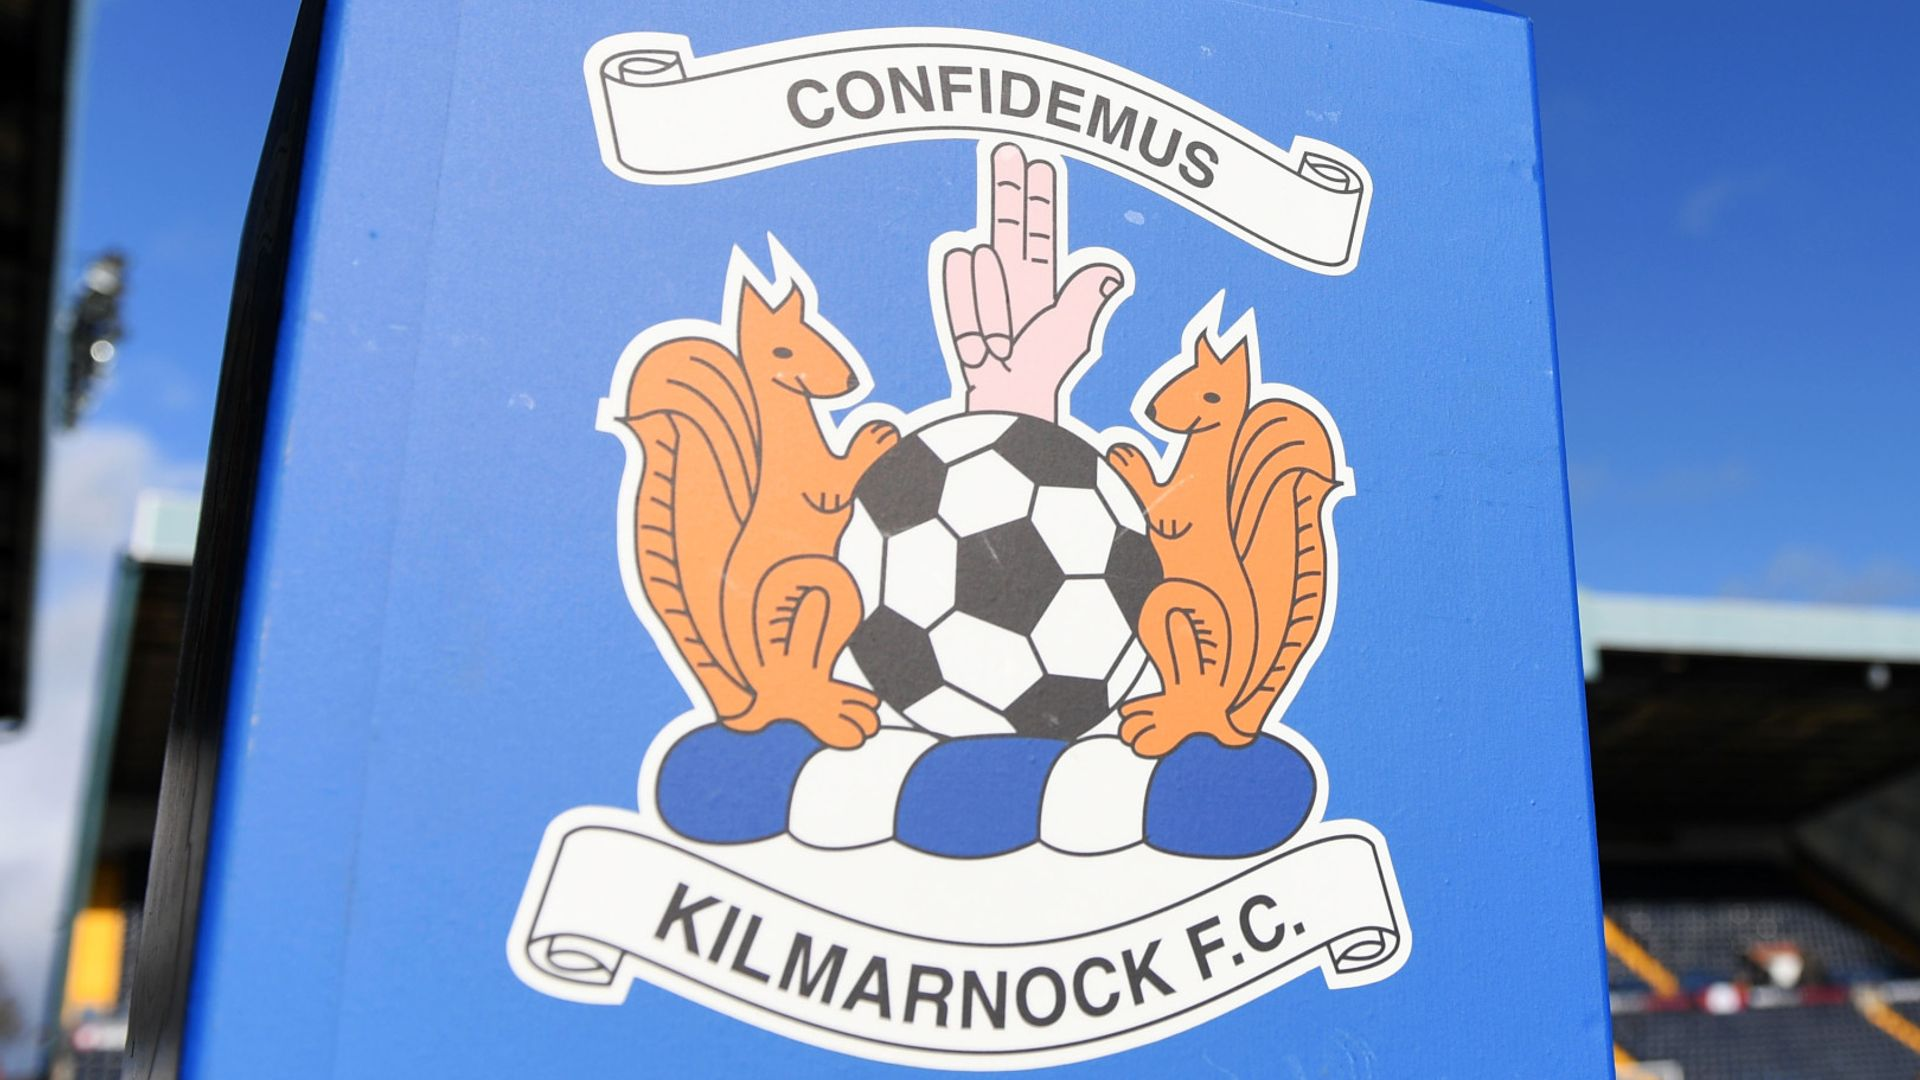 Three more Killie players test positive ahead of Friday game